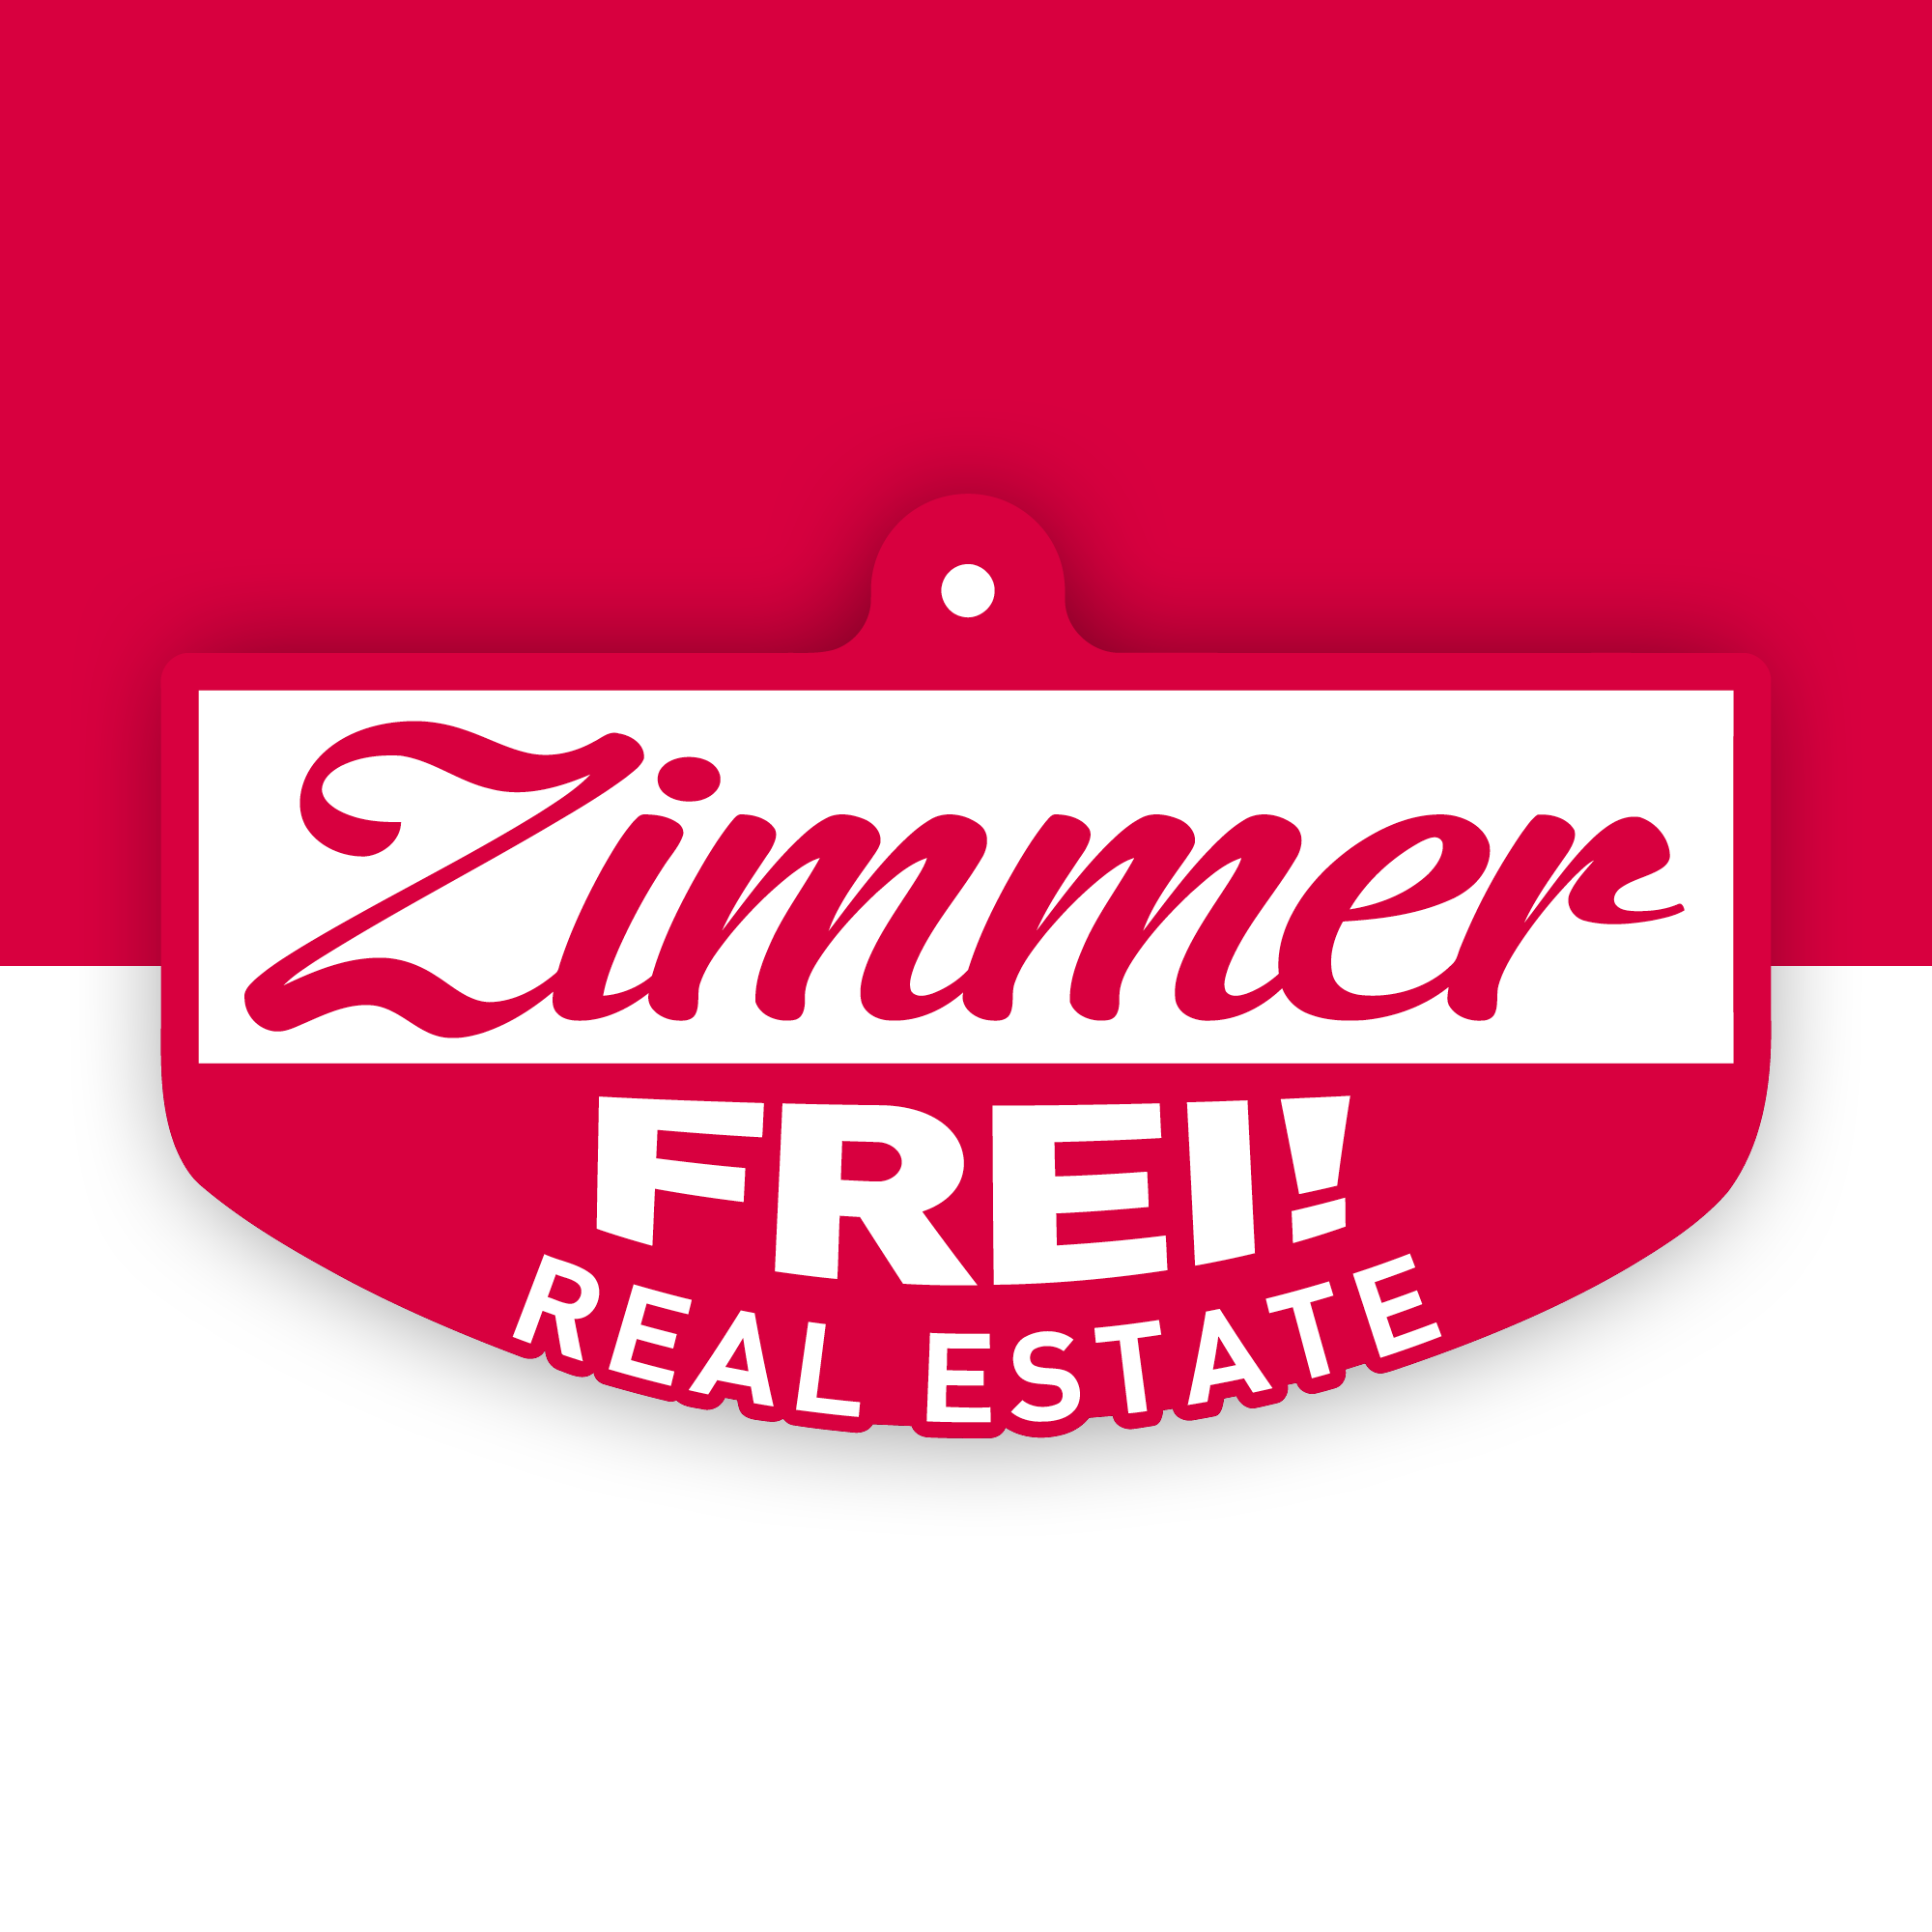 Zimmer FREI! Real Estate oHG